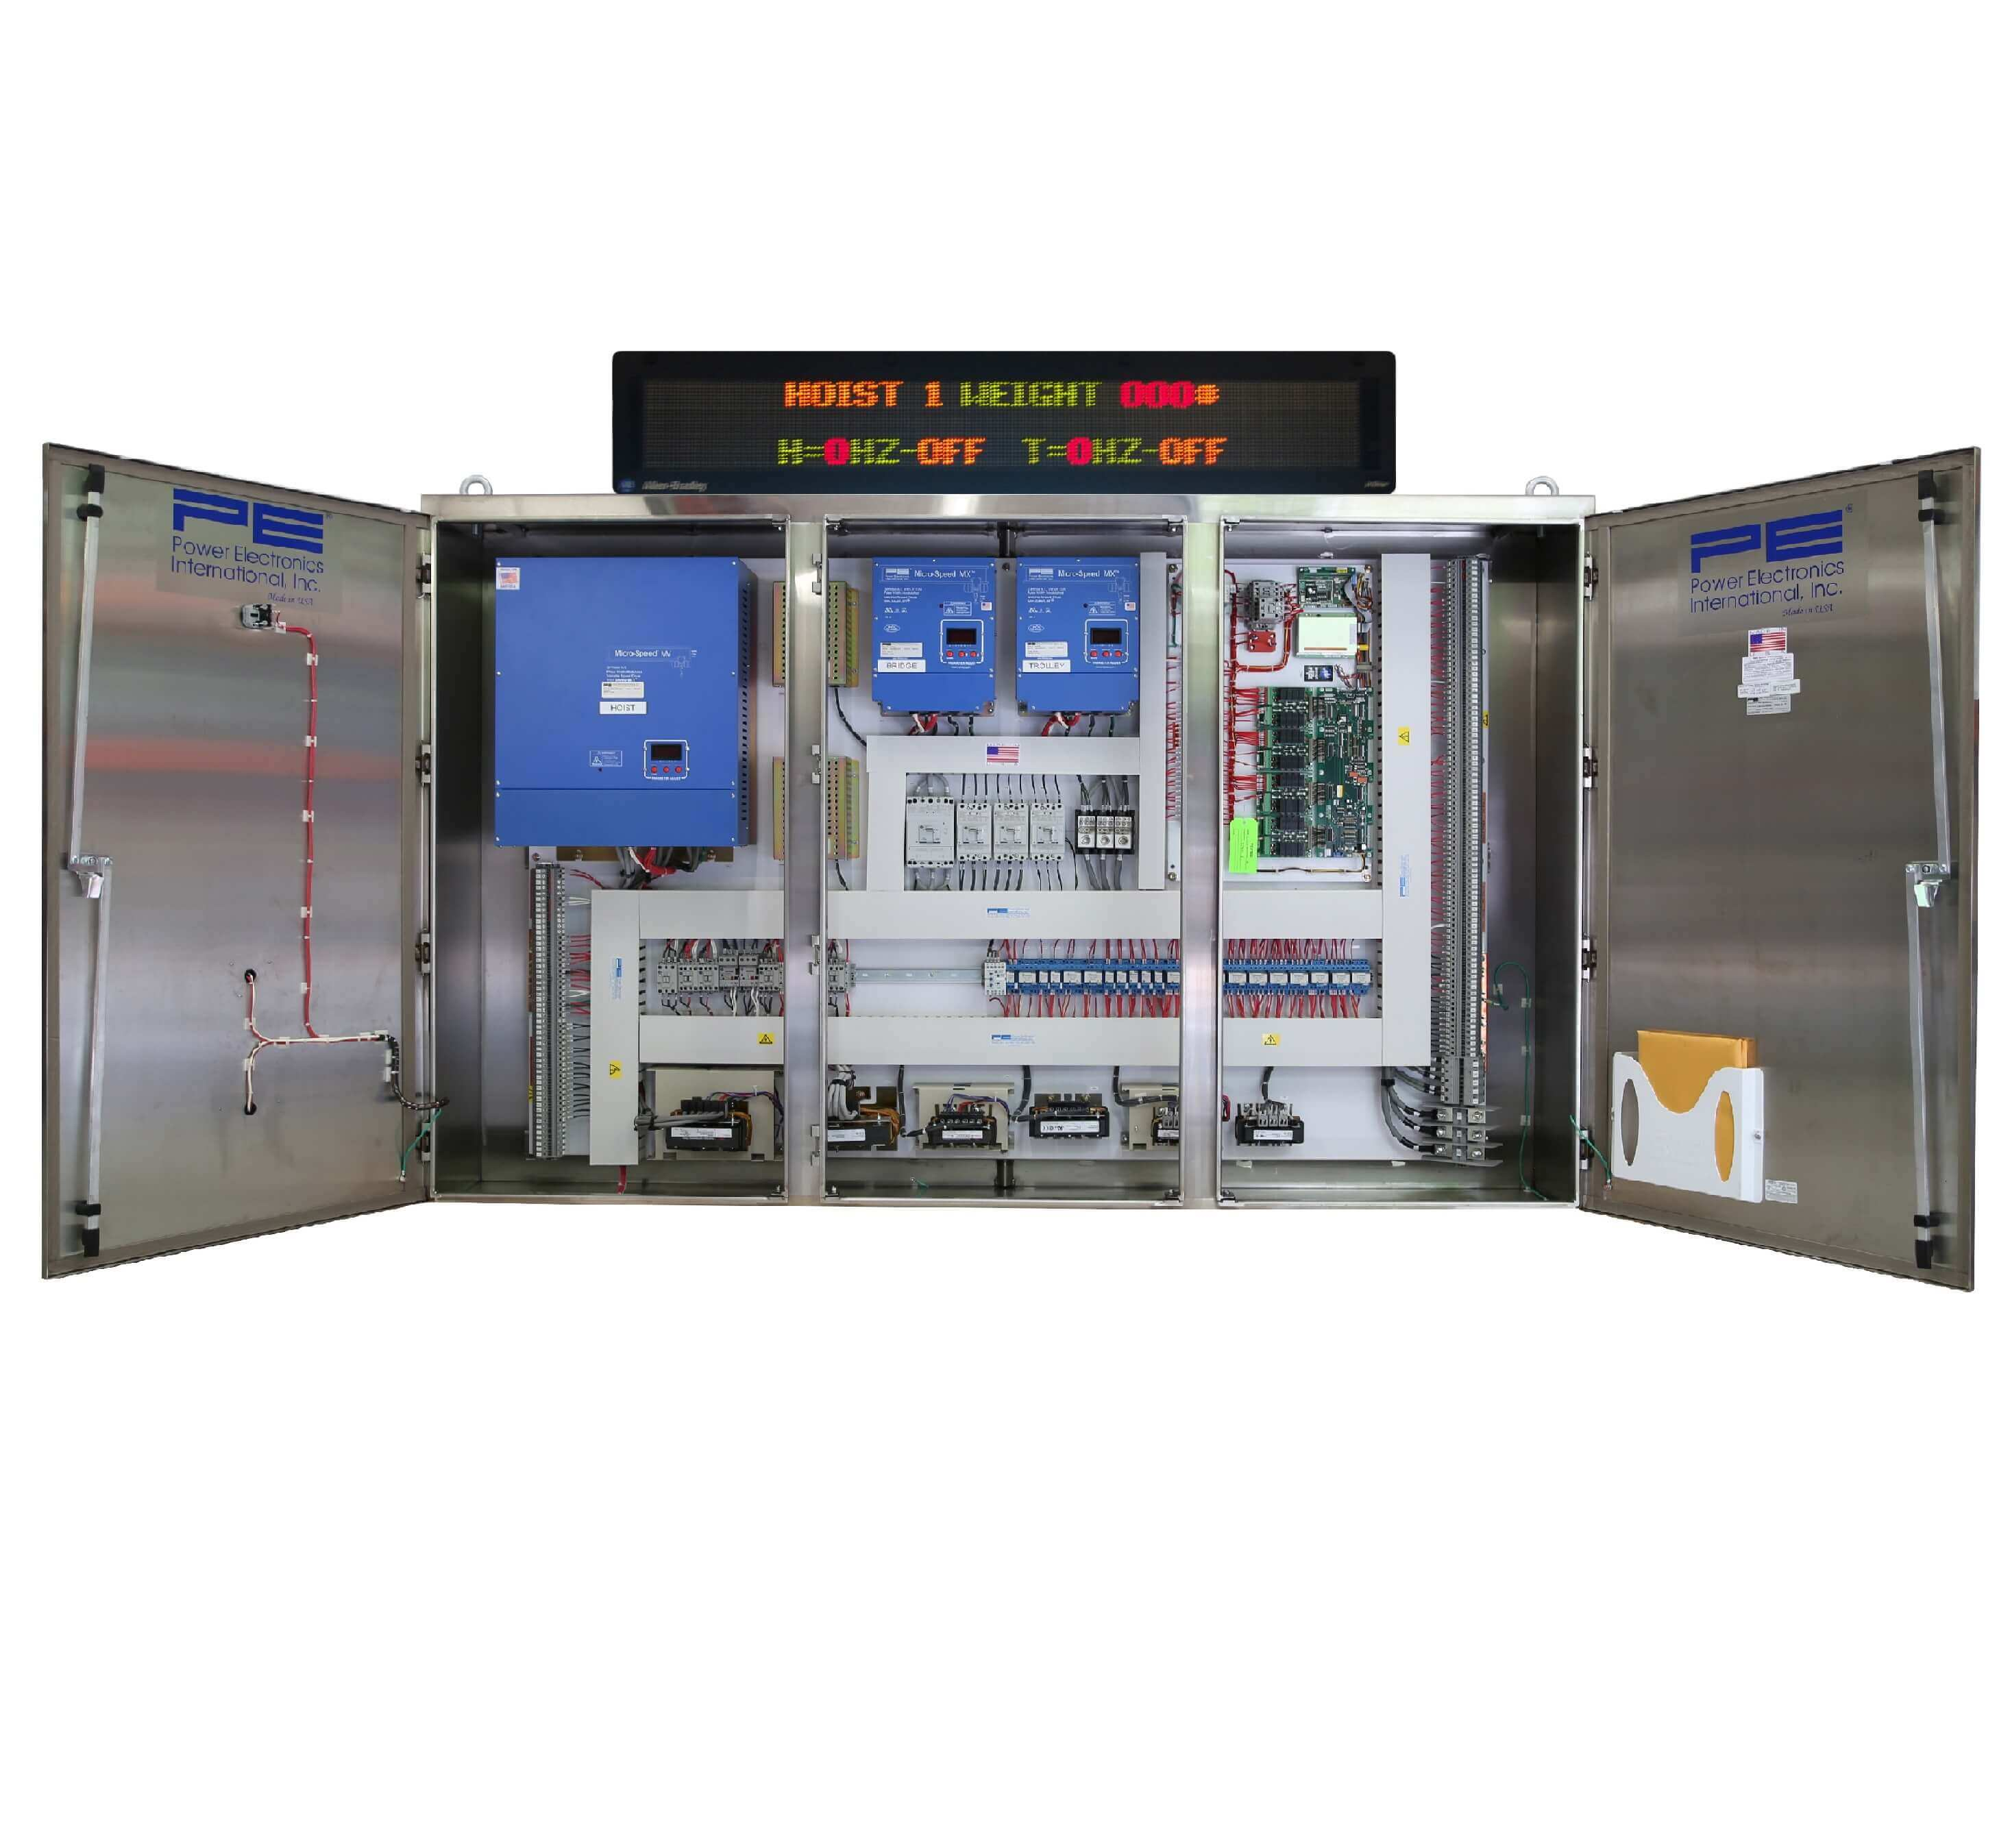 Multiple-Motion Control Panels (Power Elec.)